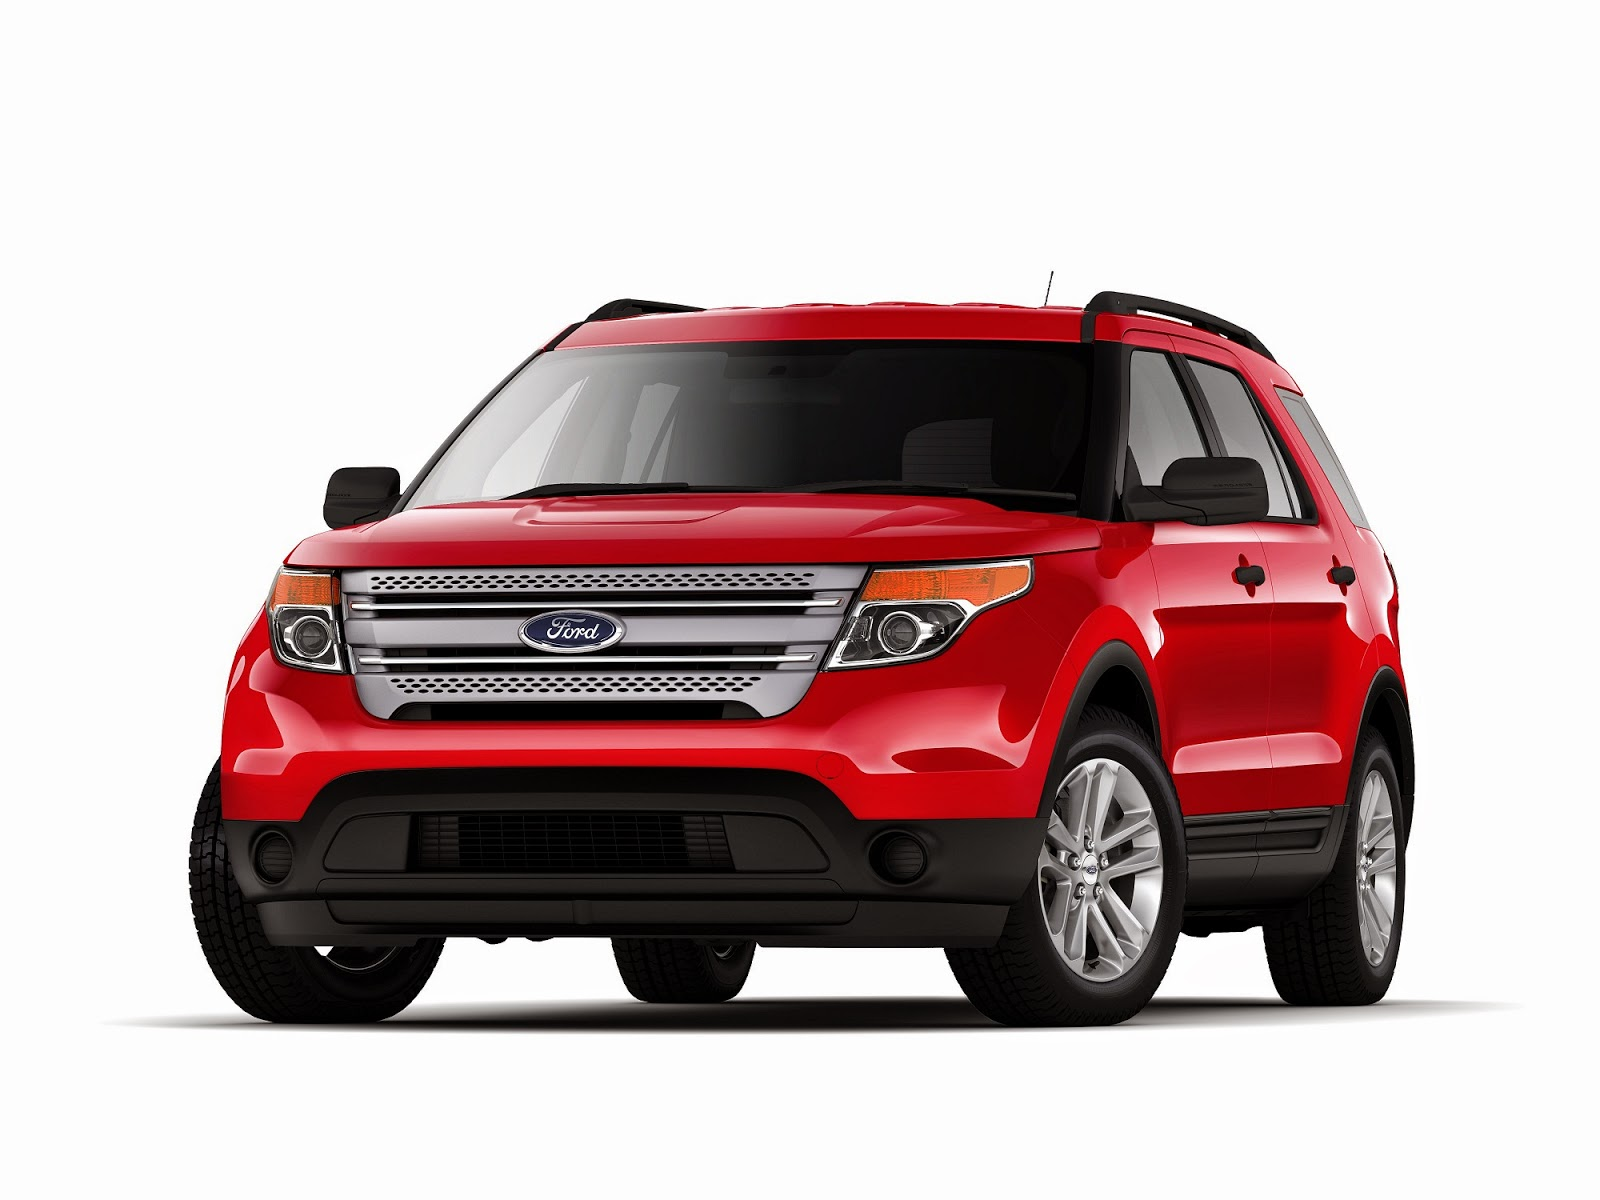 2016 2 3 ecoboost ford explorer gas mileage 2017 2018 best cars. Cars Review. Best American Auto & Cars Review